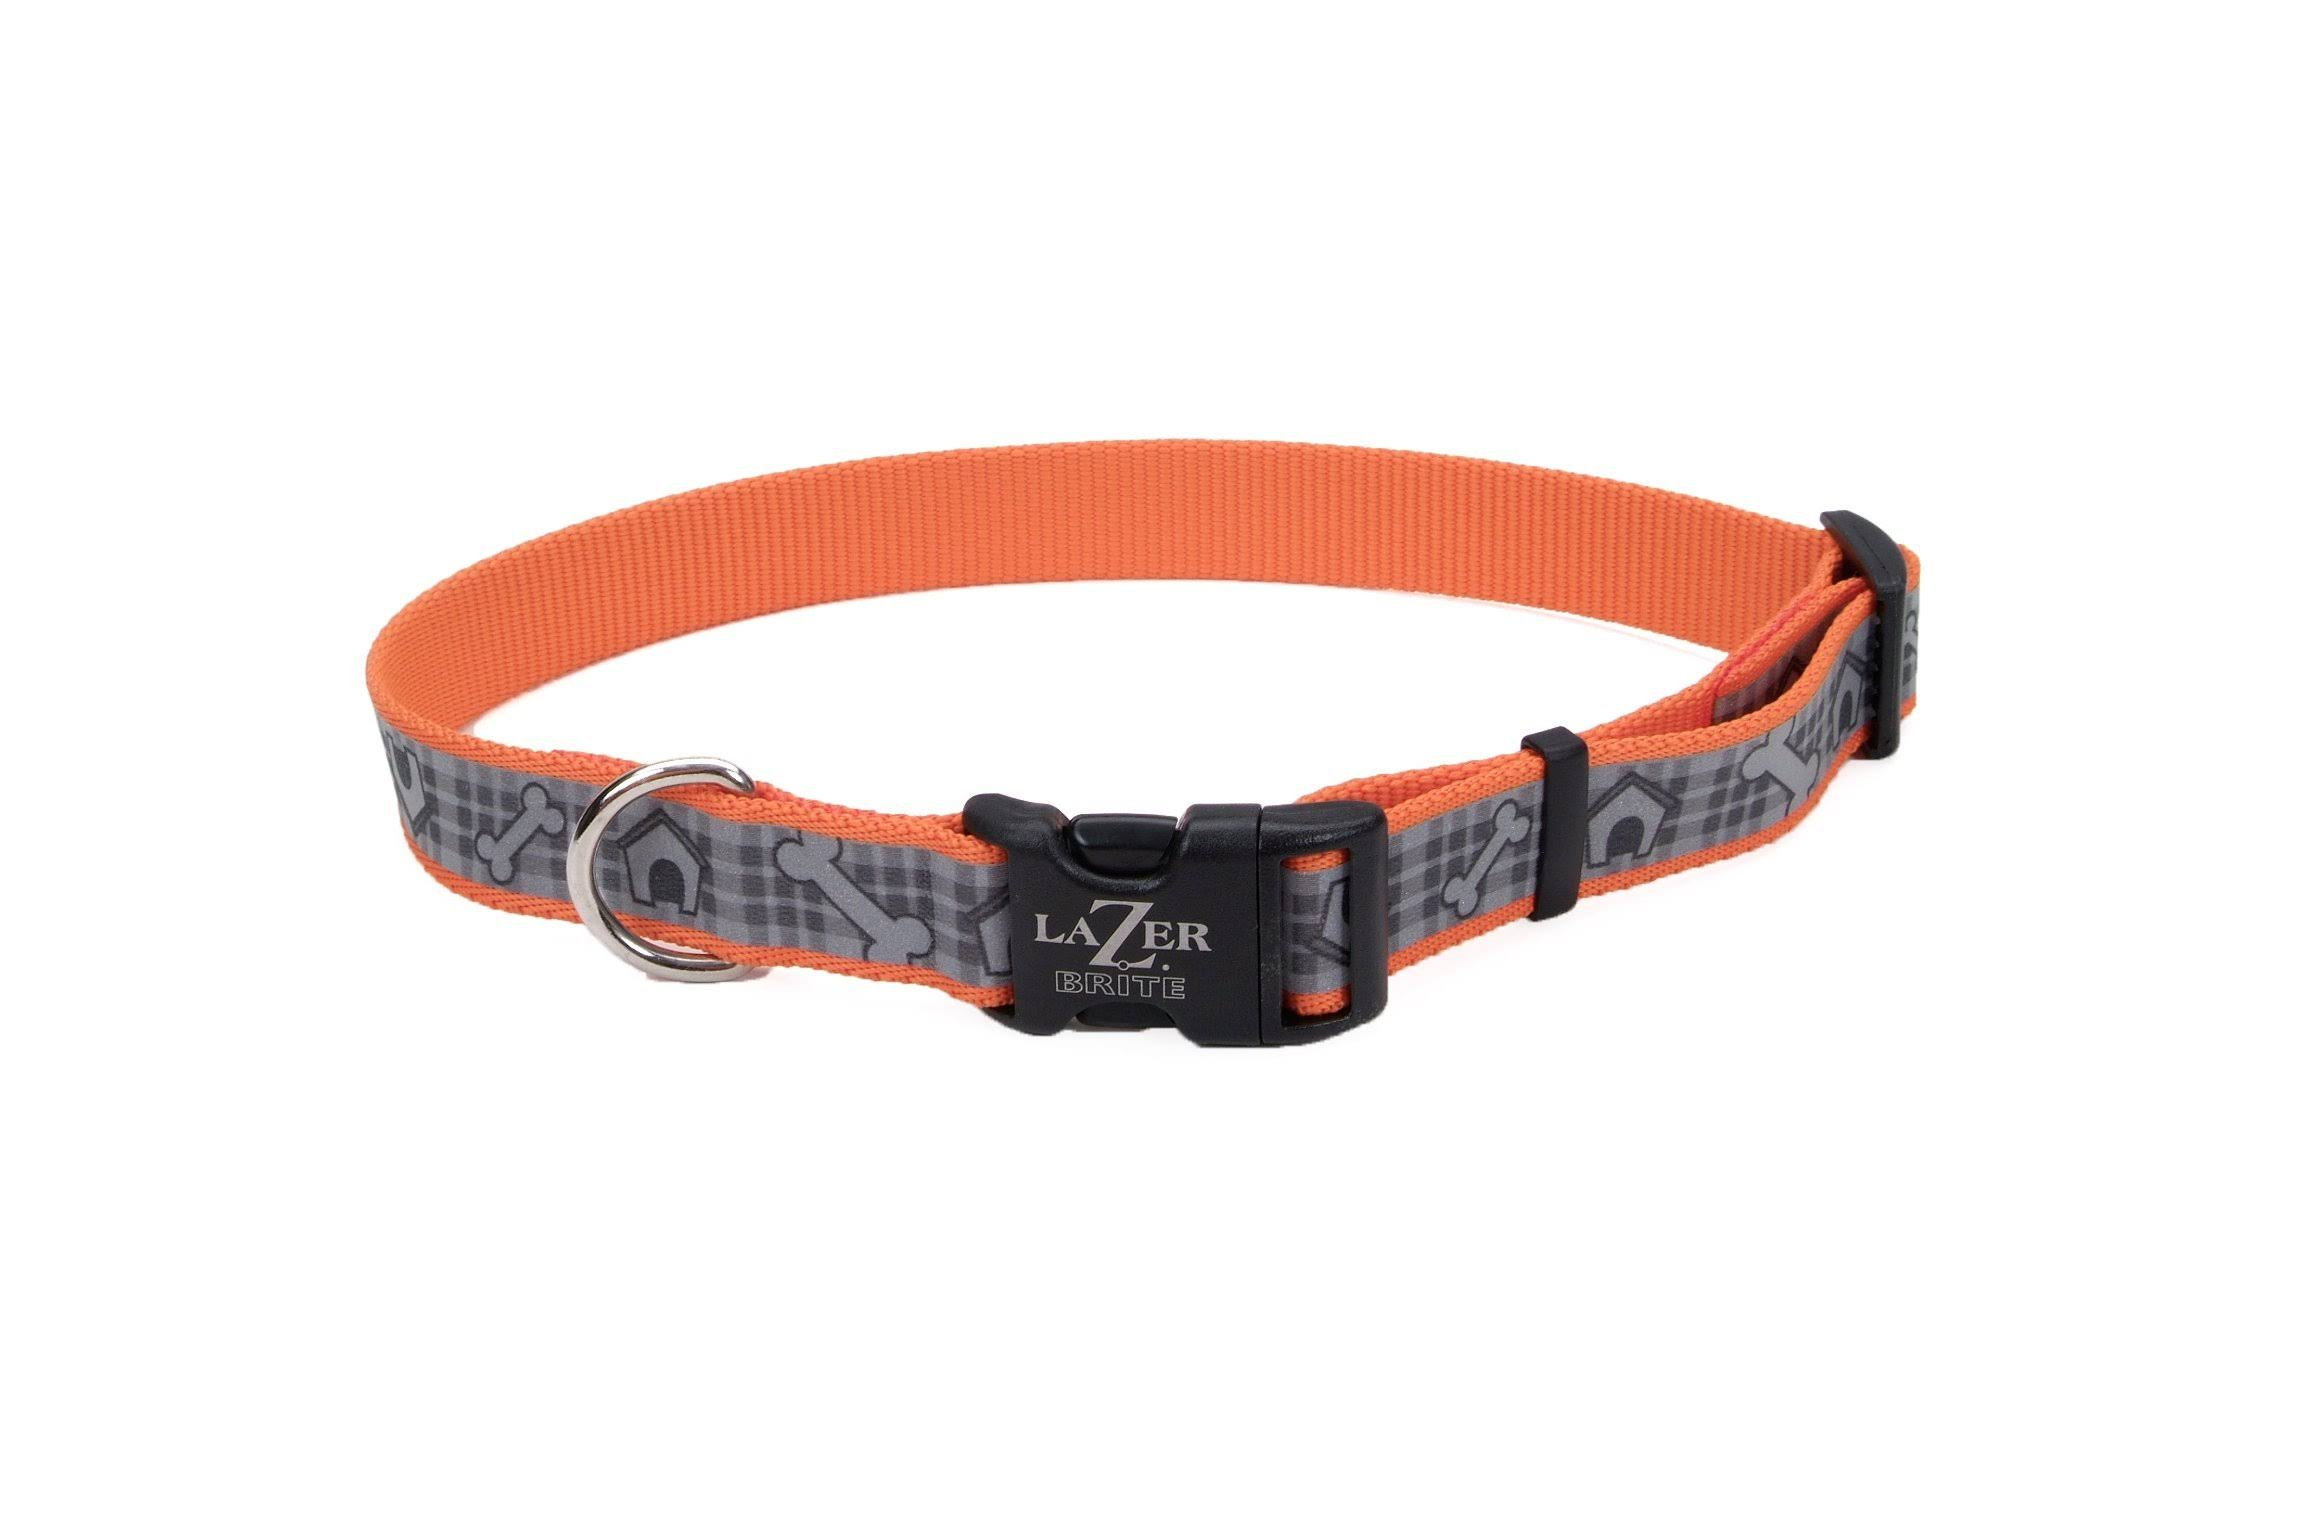 Coastal Pet Lazer Brite Reflective Adjustable Dog Collar - X-Large, Orange